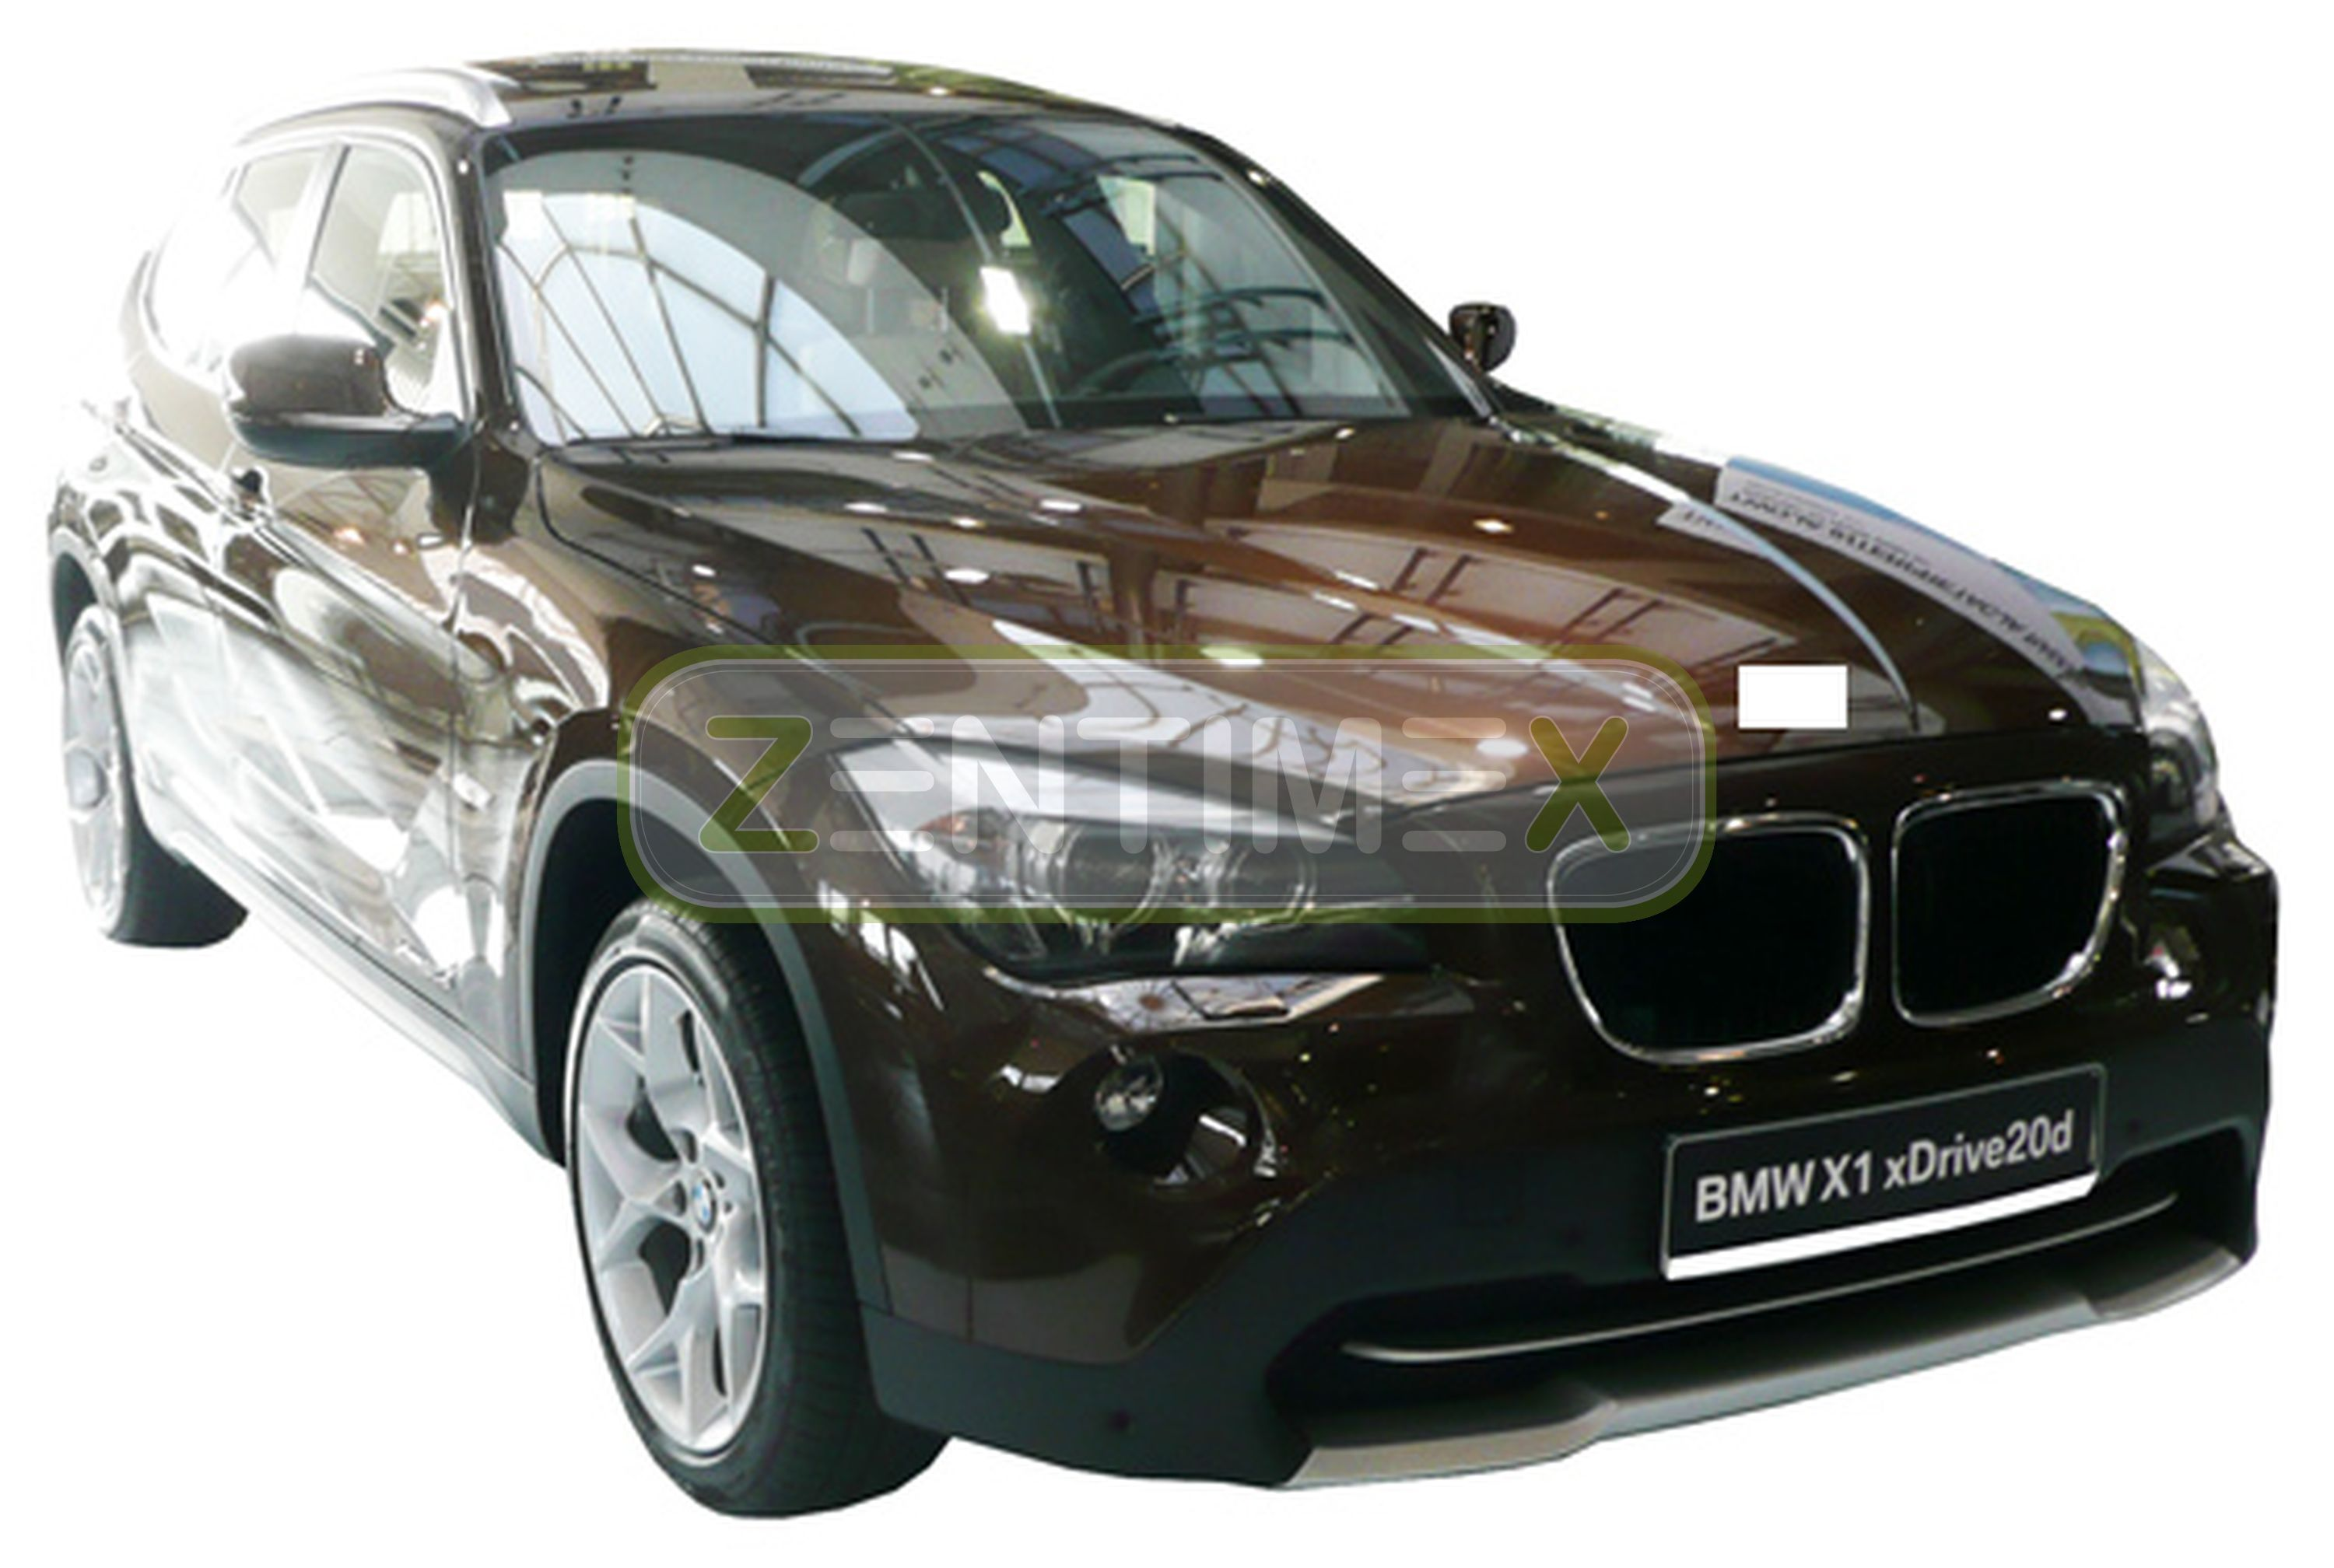 kofferraumwanne f r bmw x1 xdrive e84 vor facelift. Black Bedroom Furniture Sets. Home Design Ideas